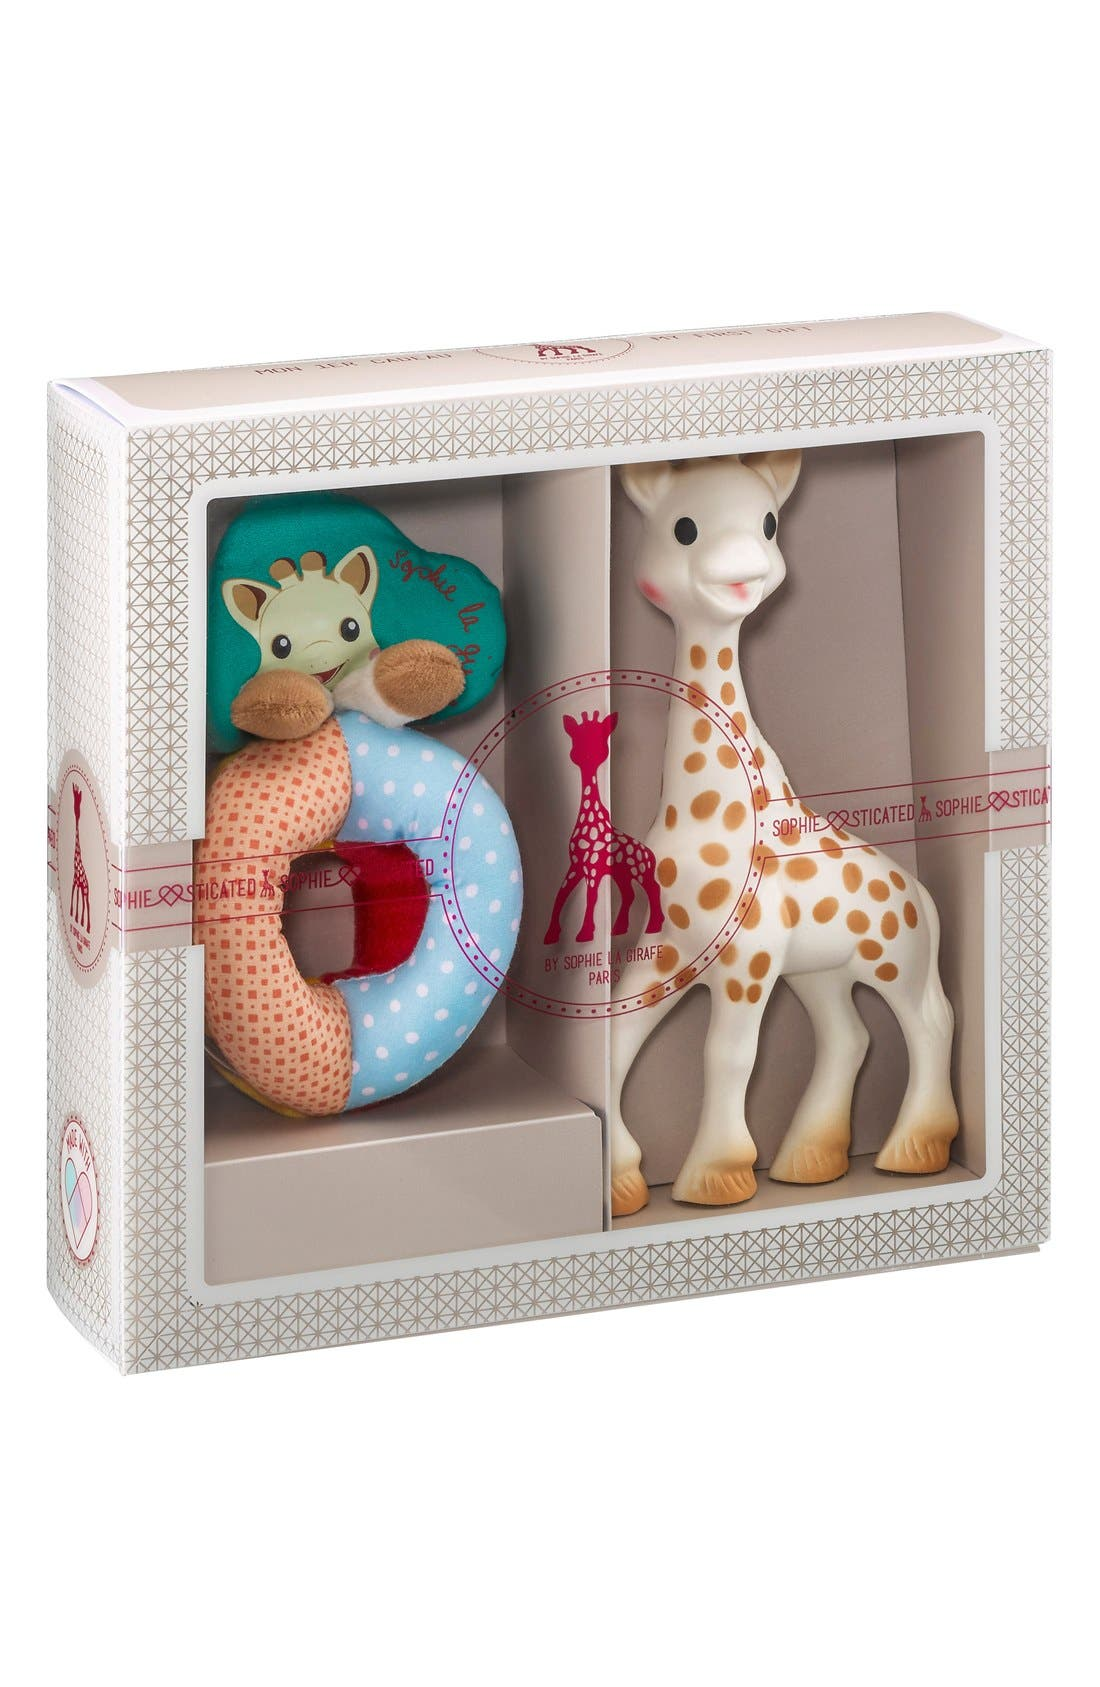 Main Image - Sophie la Girafe 'Sophiesticated' Rattle & Teething Toy